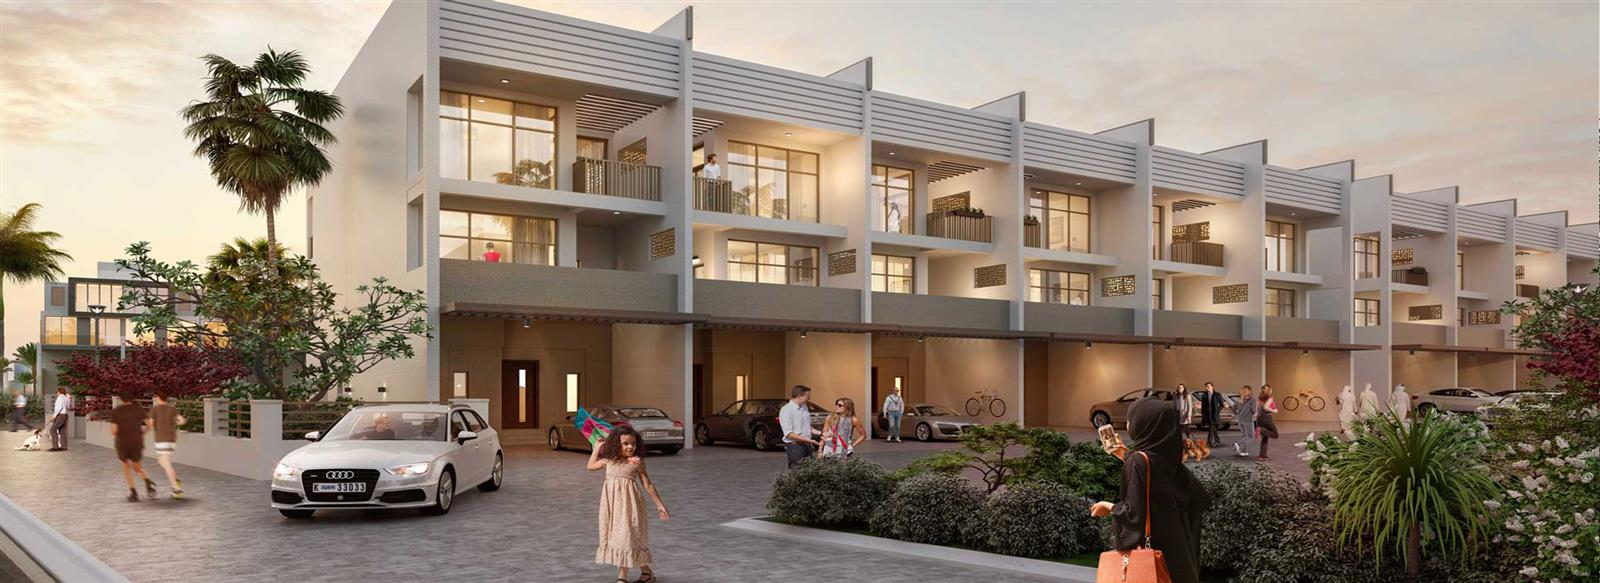 Luxury Designed Interior 4 Bedroom Townhouses